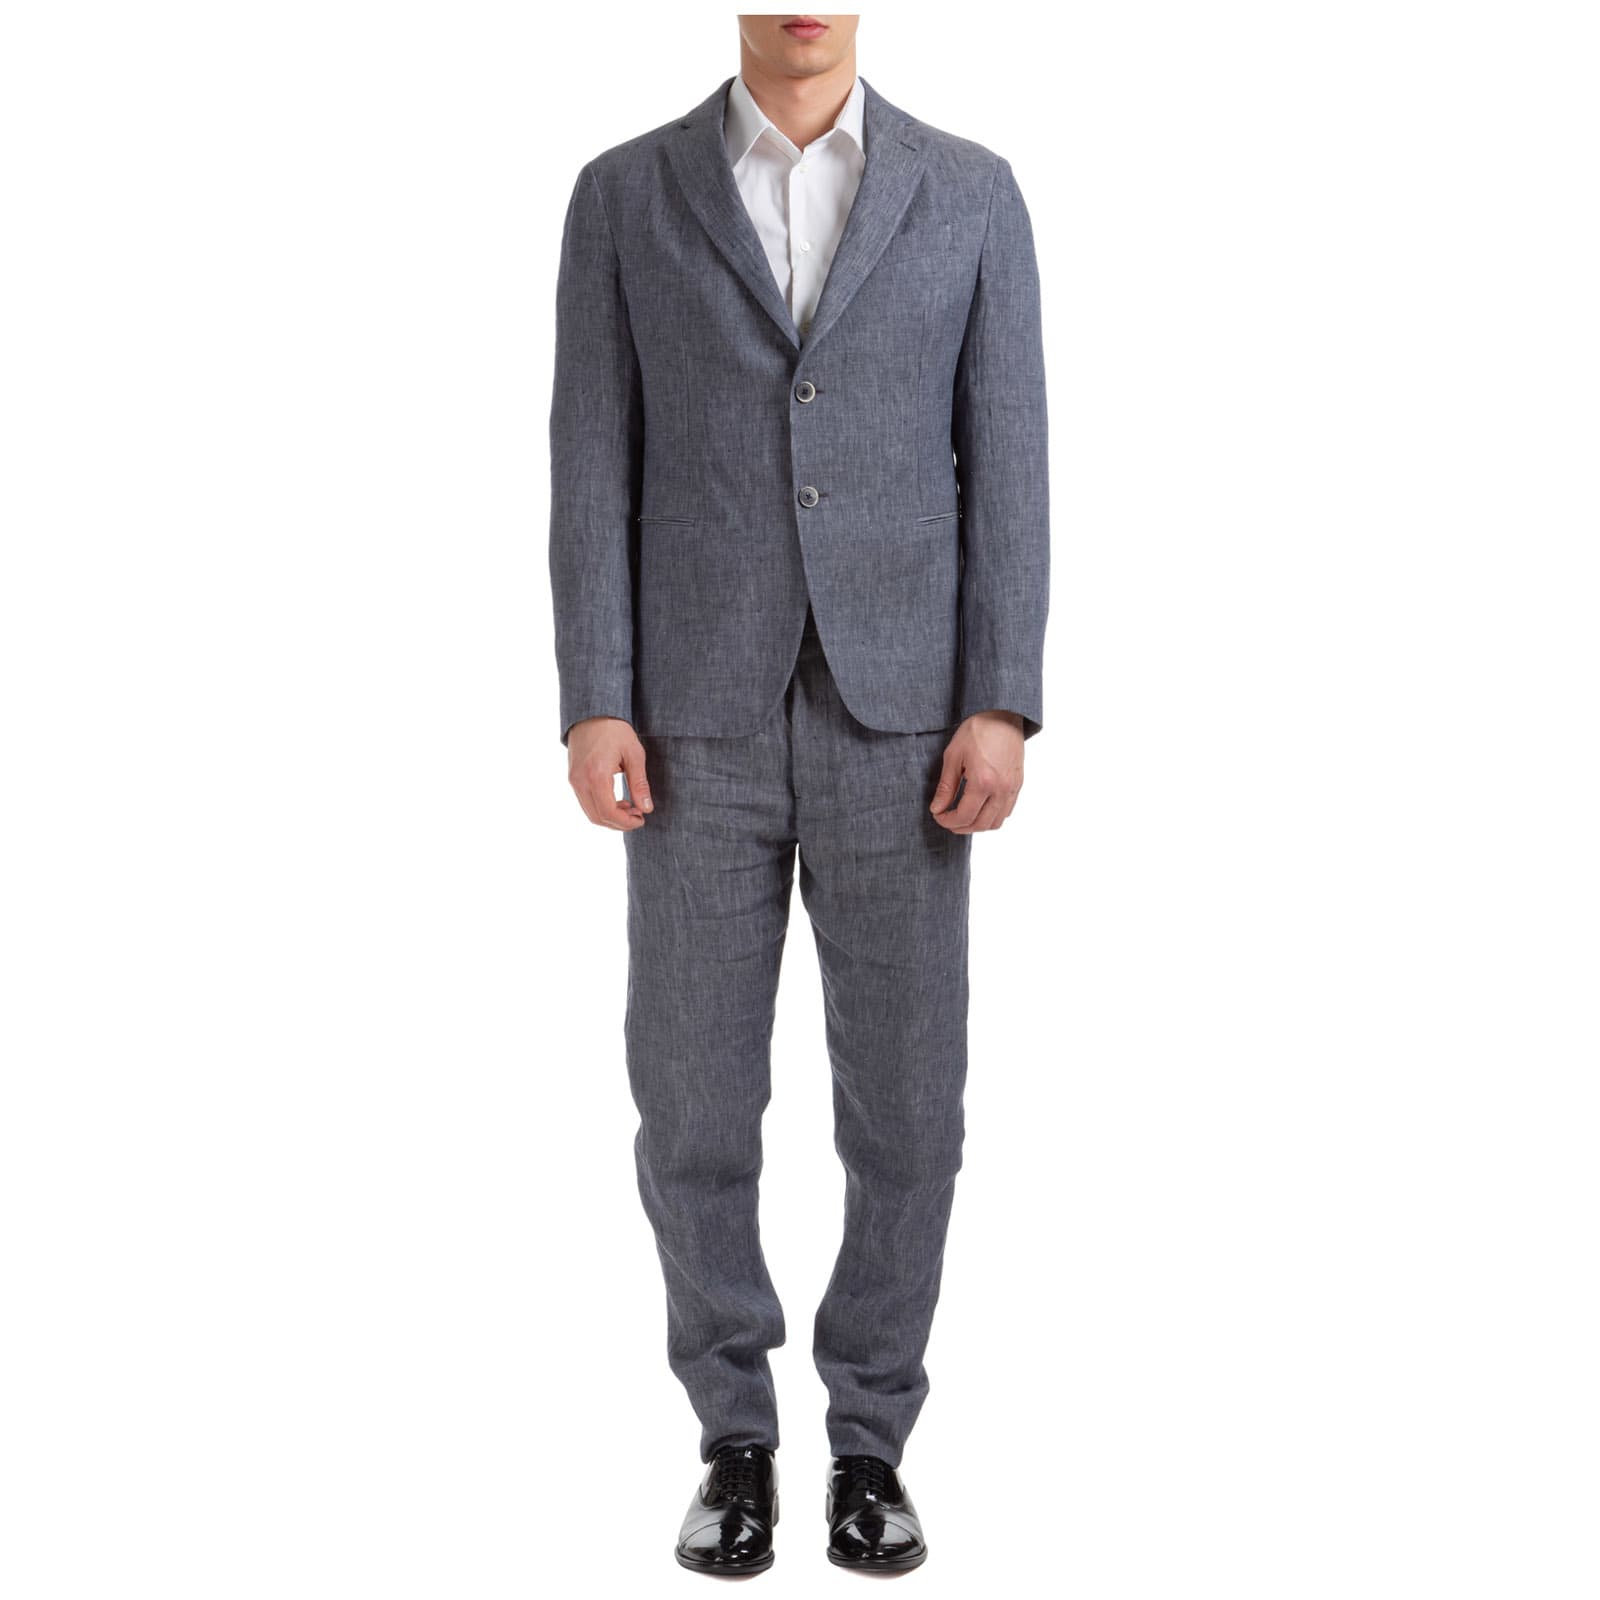 Emporio Armani Karl Oui Suits